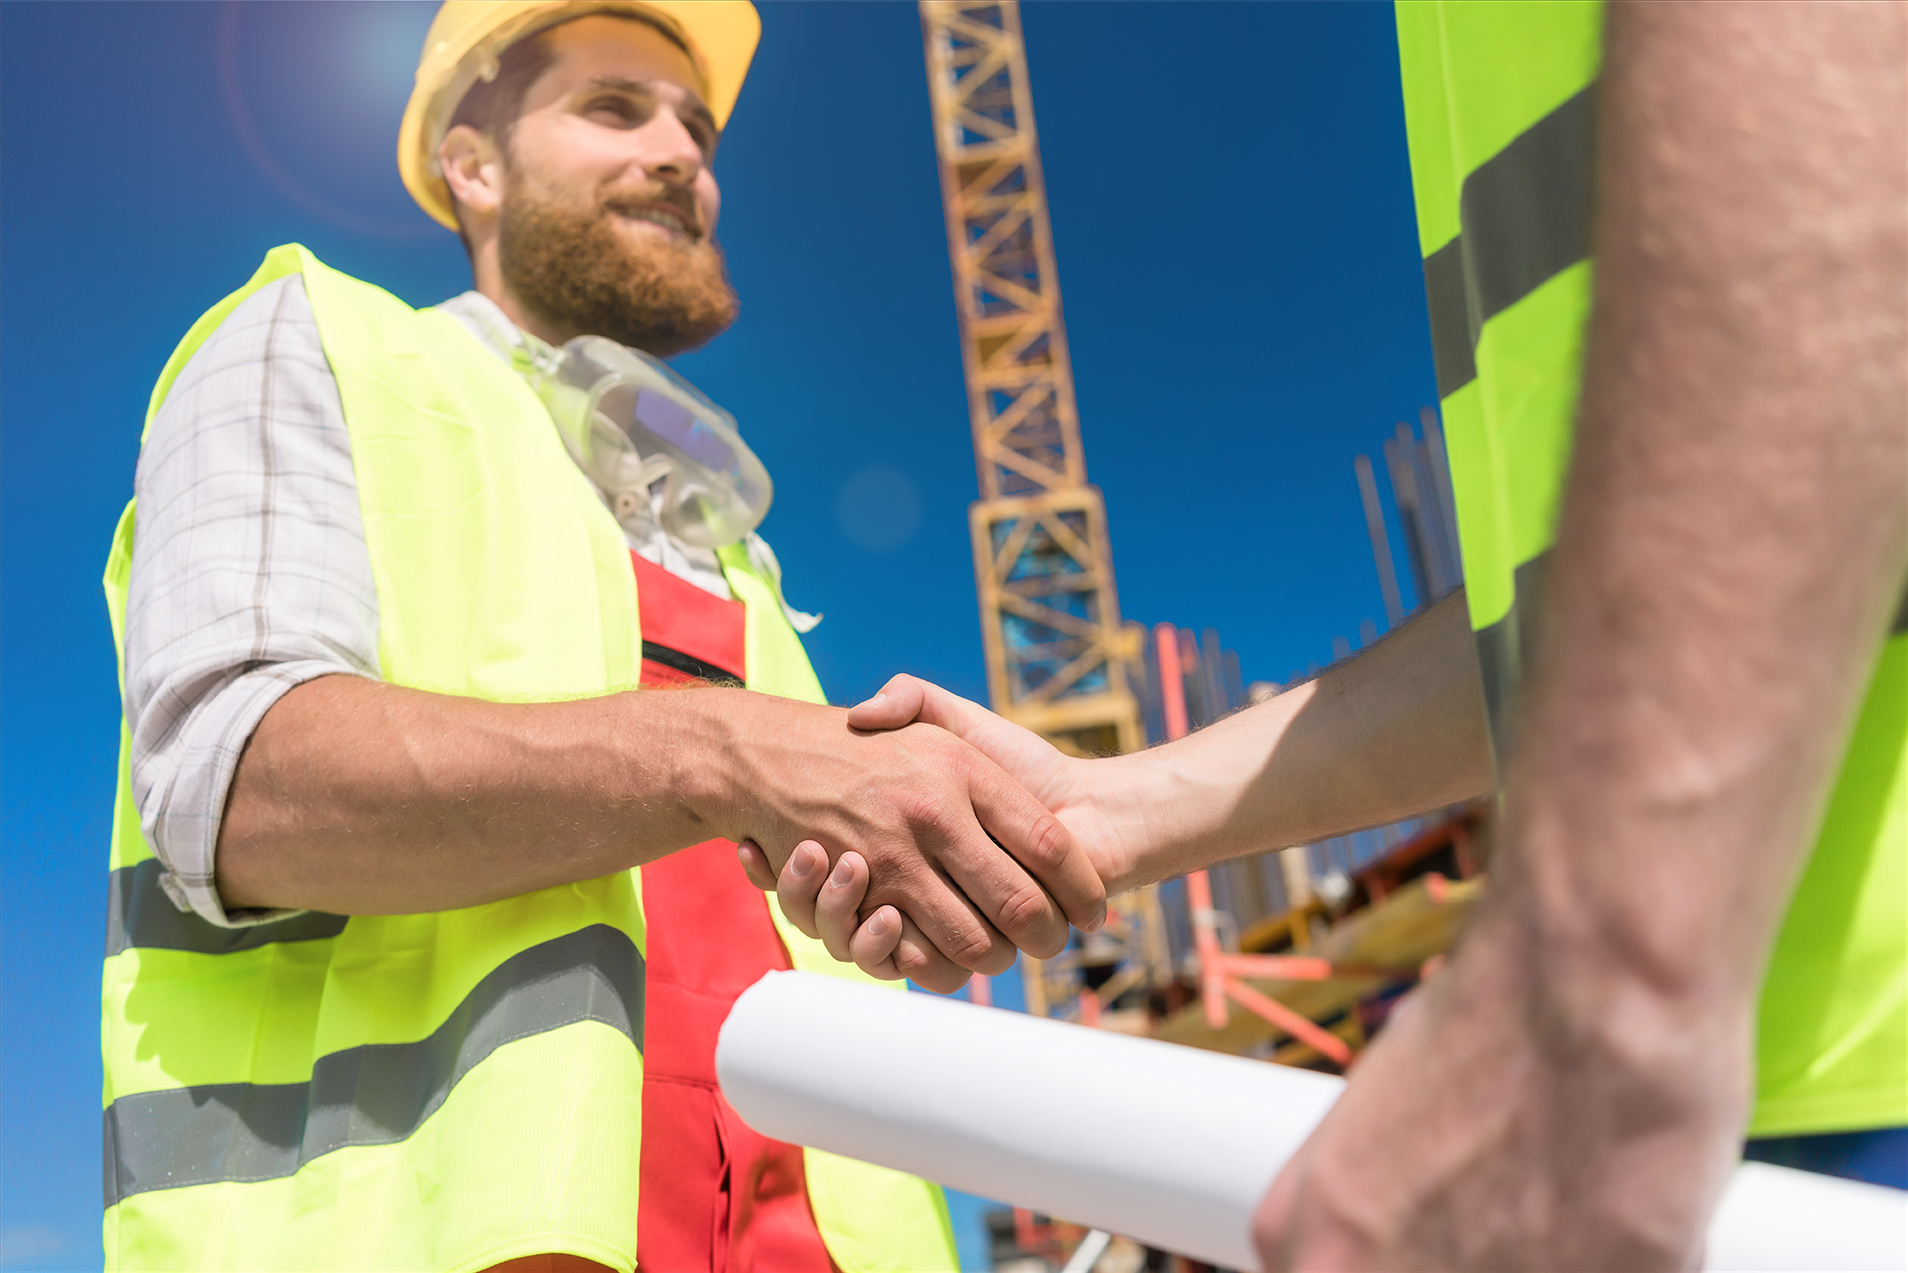 Cheerful worker shaking the hand of an architect at the beginning of a new project